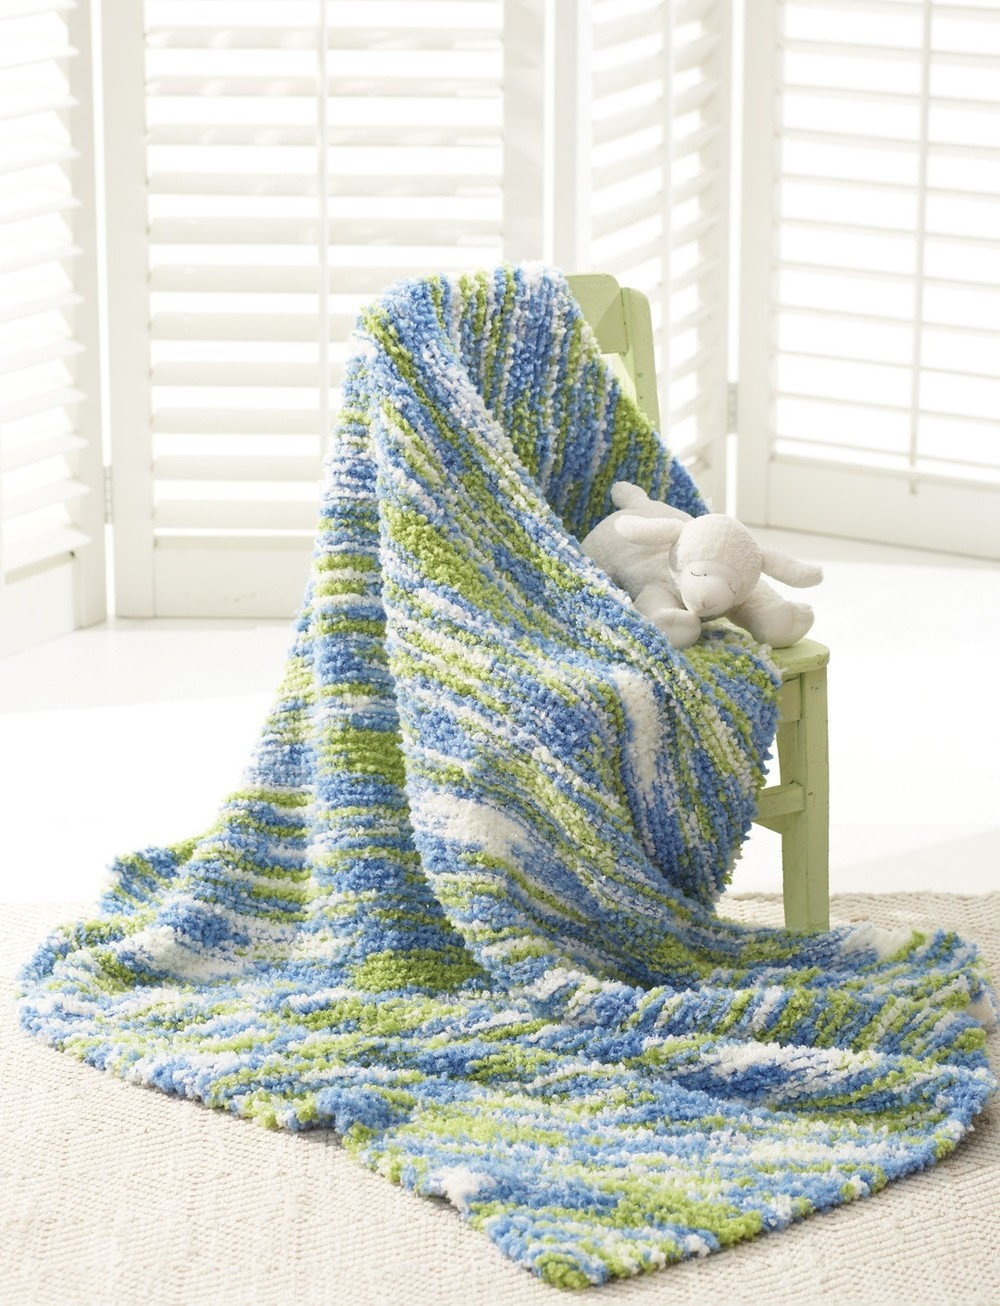 Knitted Baby Blanket Lovely the Land and the Sea Baby Blanket Of Amazing 46 Pictures Knitted Baby Blanket